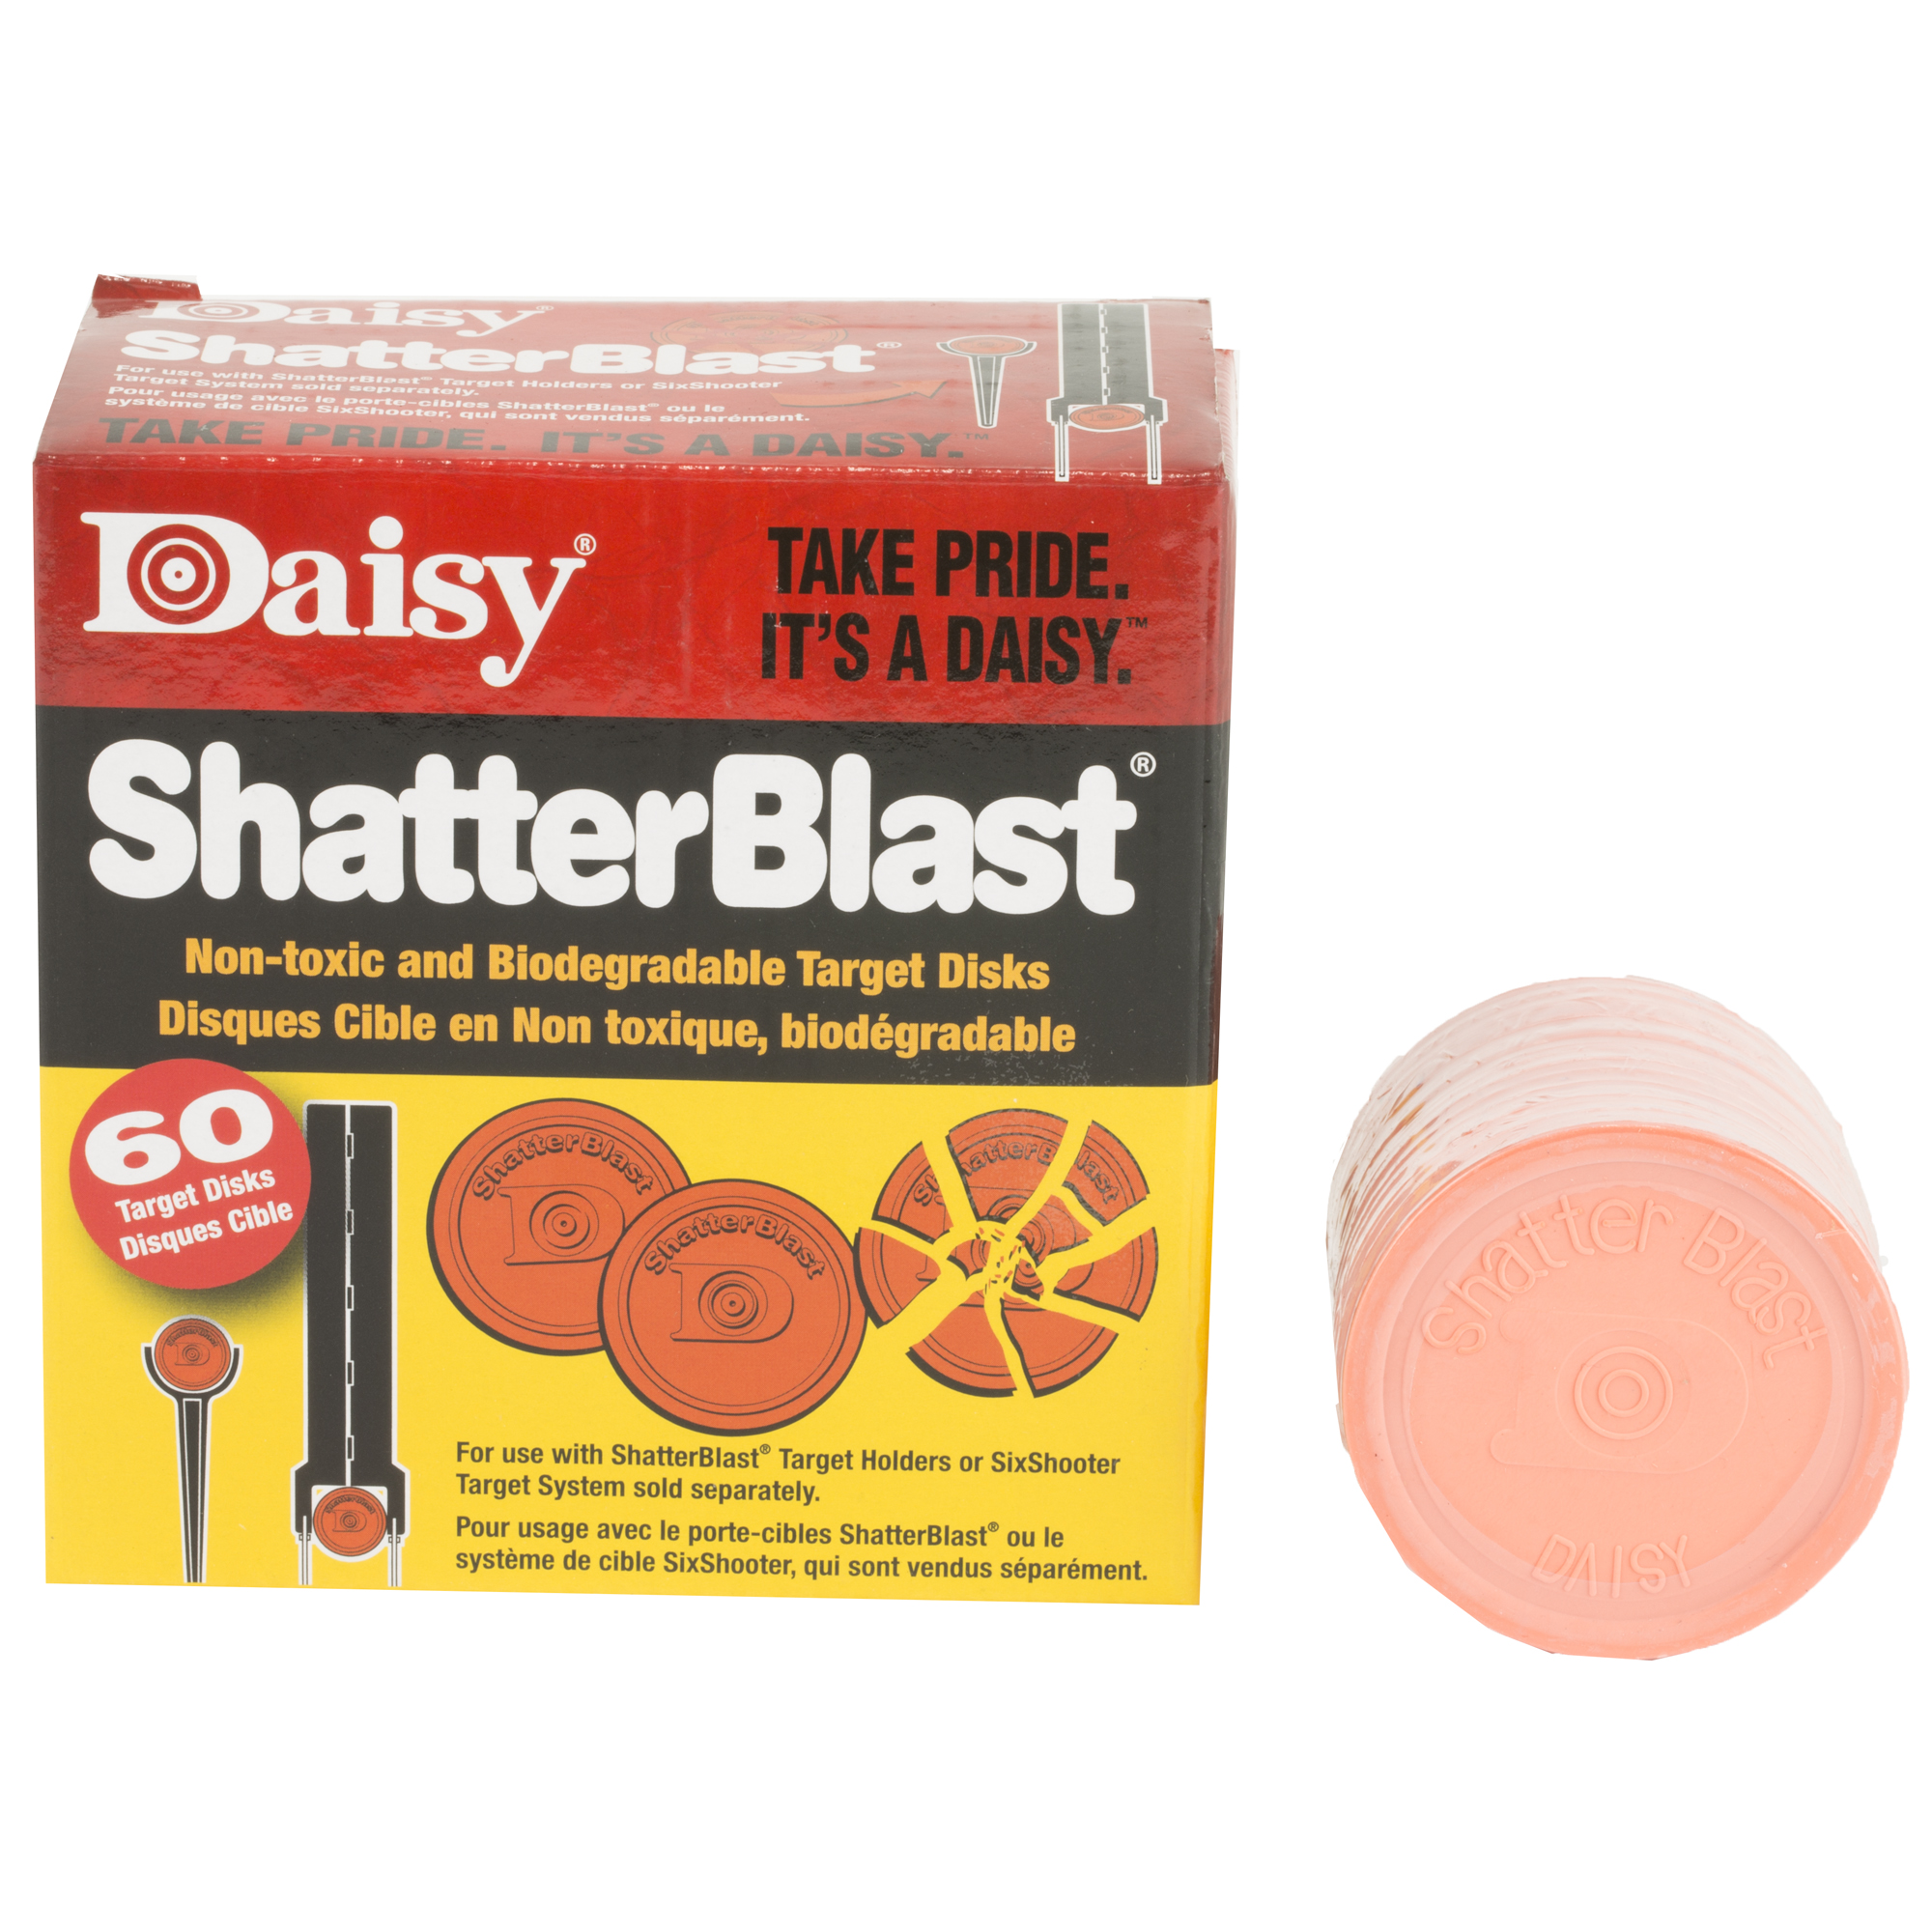 "Improve your target-shooting skills with the Daisy(R) ShatterBlast Clay Targets 60-Pack. The 2"" clay targets break into little pieces when you shoot them and are made from nontoxic"" biodegradable natural clay."